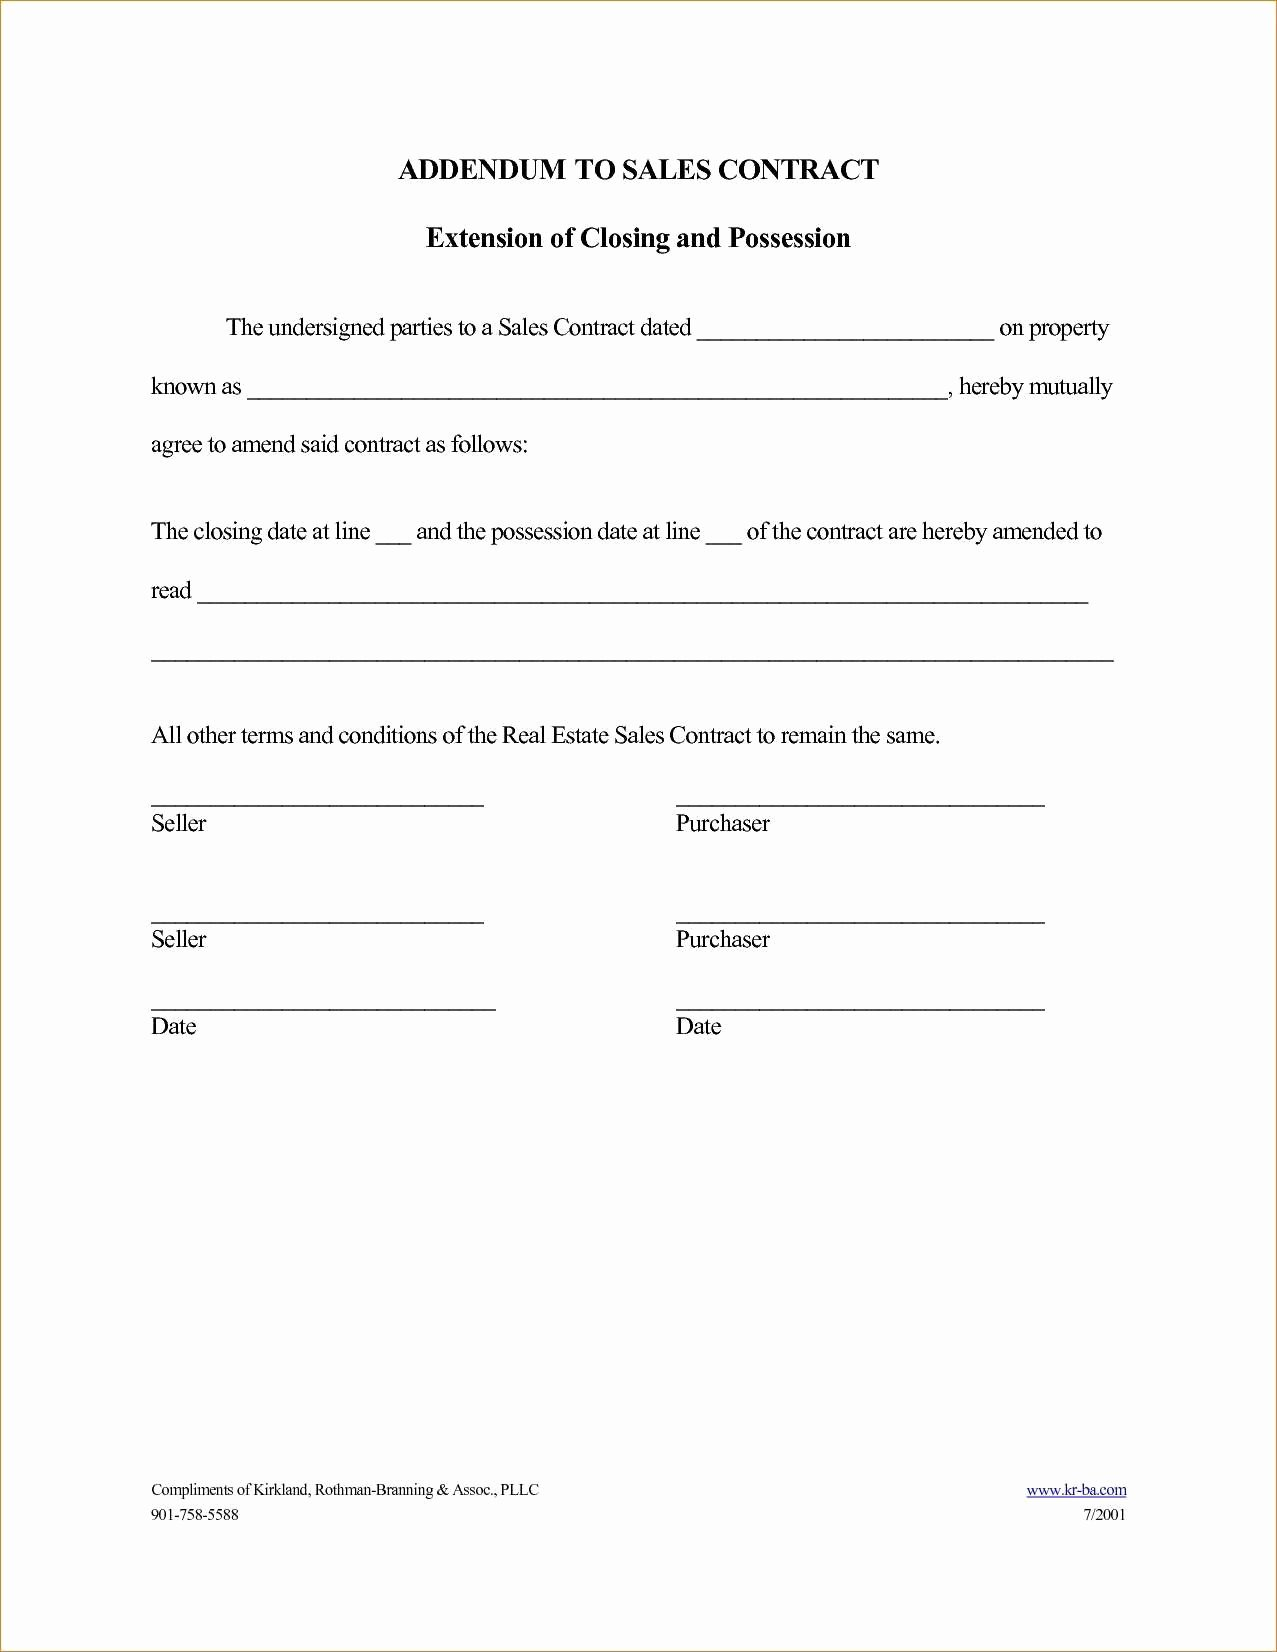 Amendment to Contract Template Lovely Amendment to Purchase Agreement Simple Contract Addendum